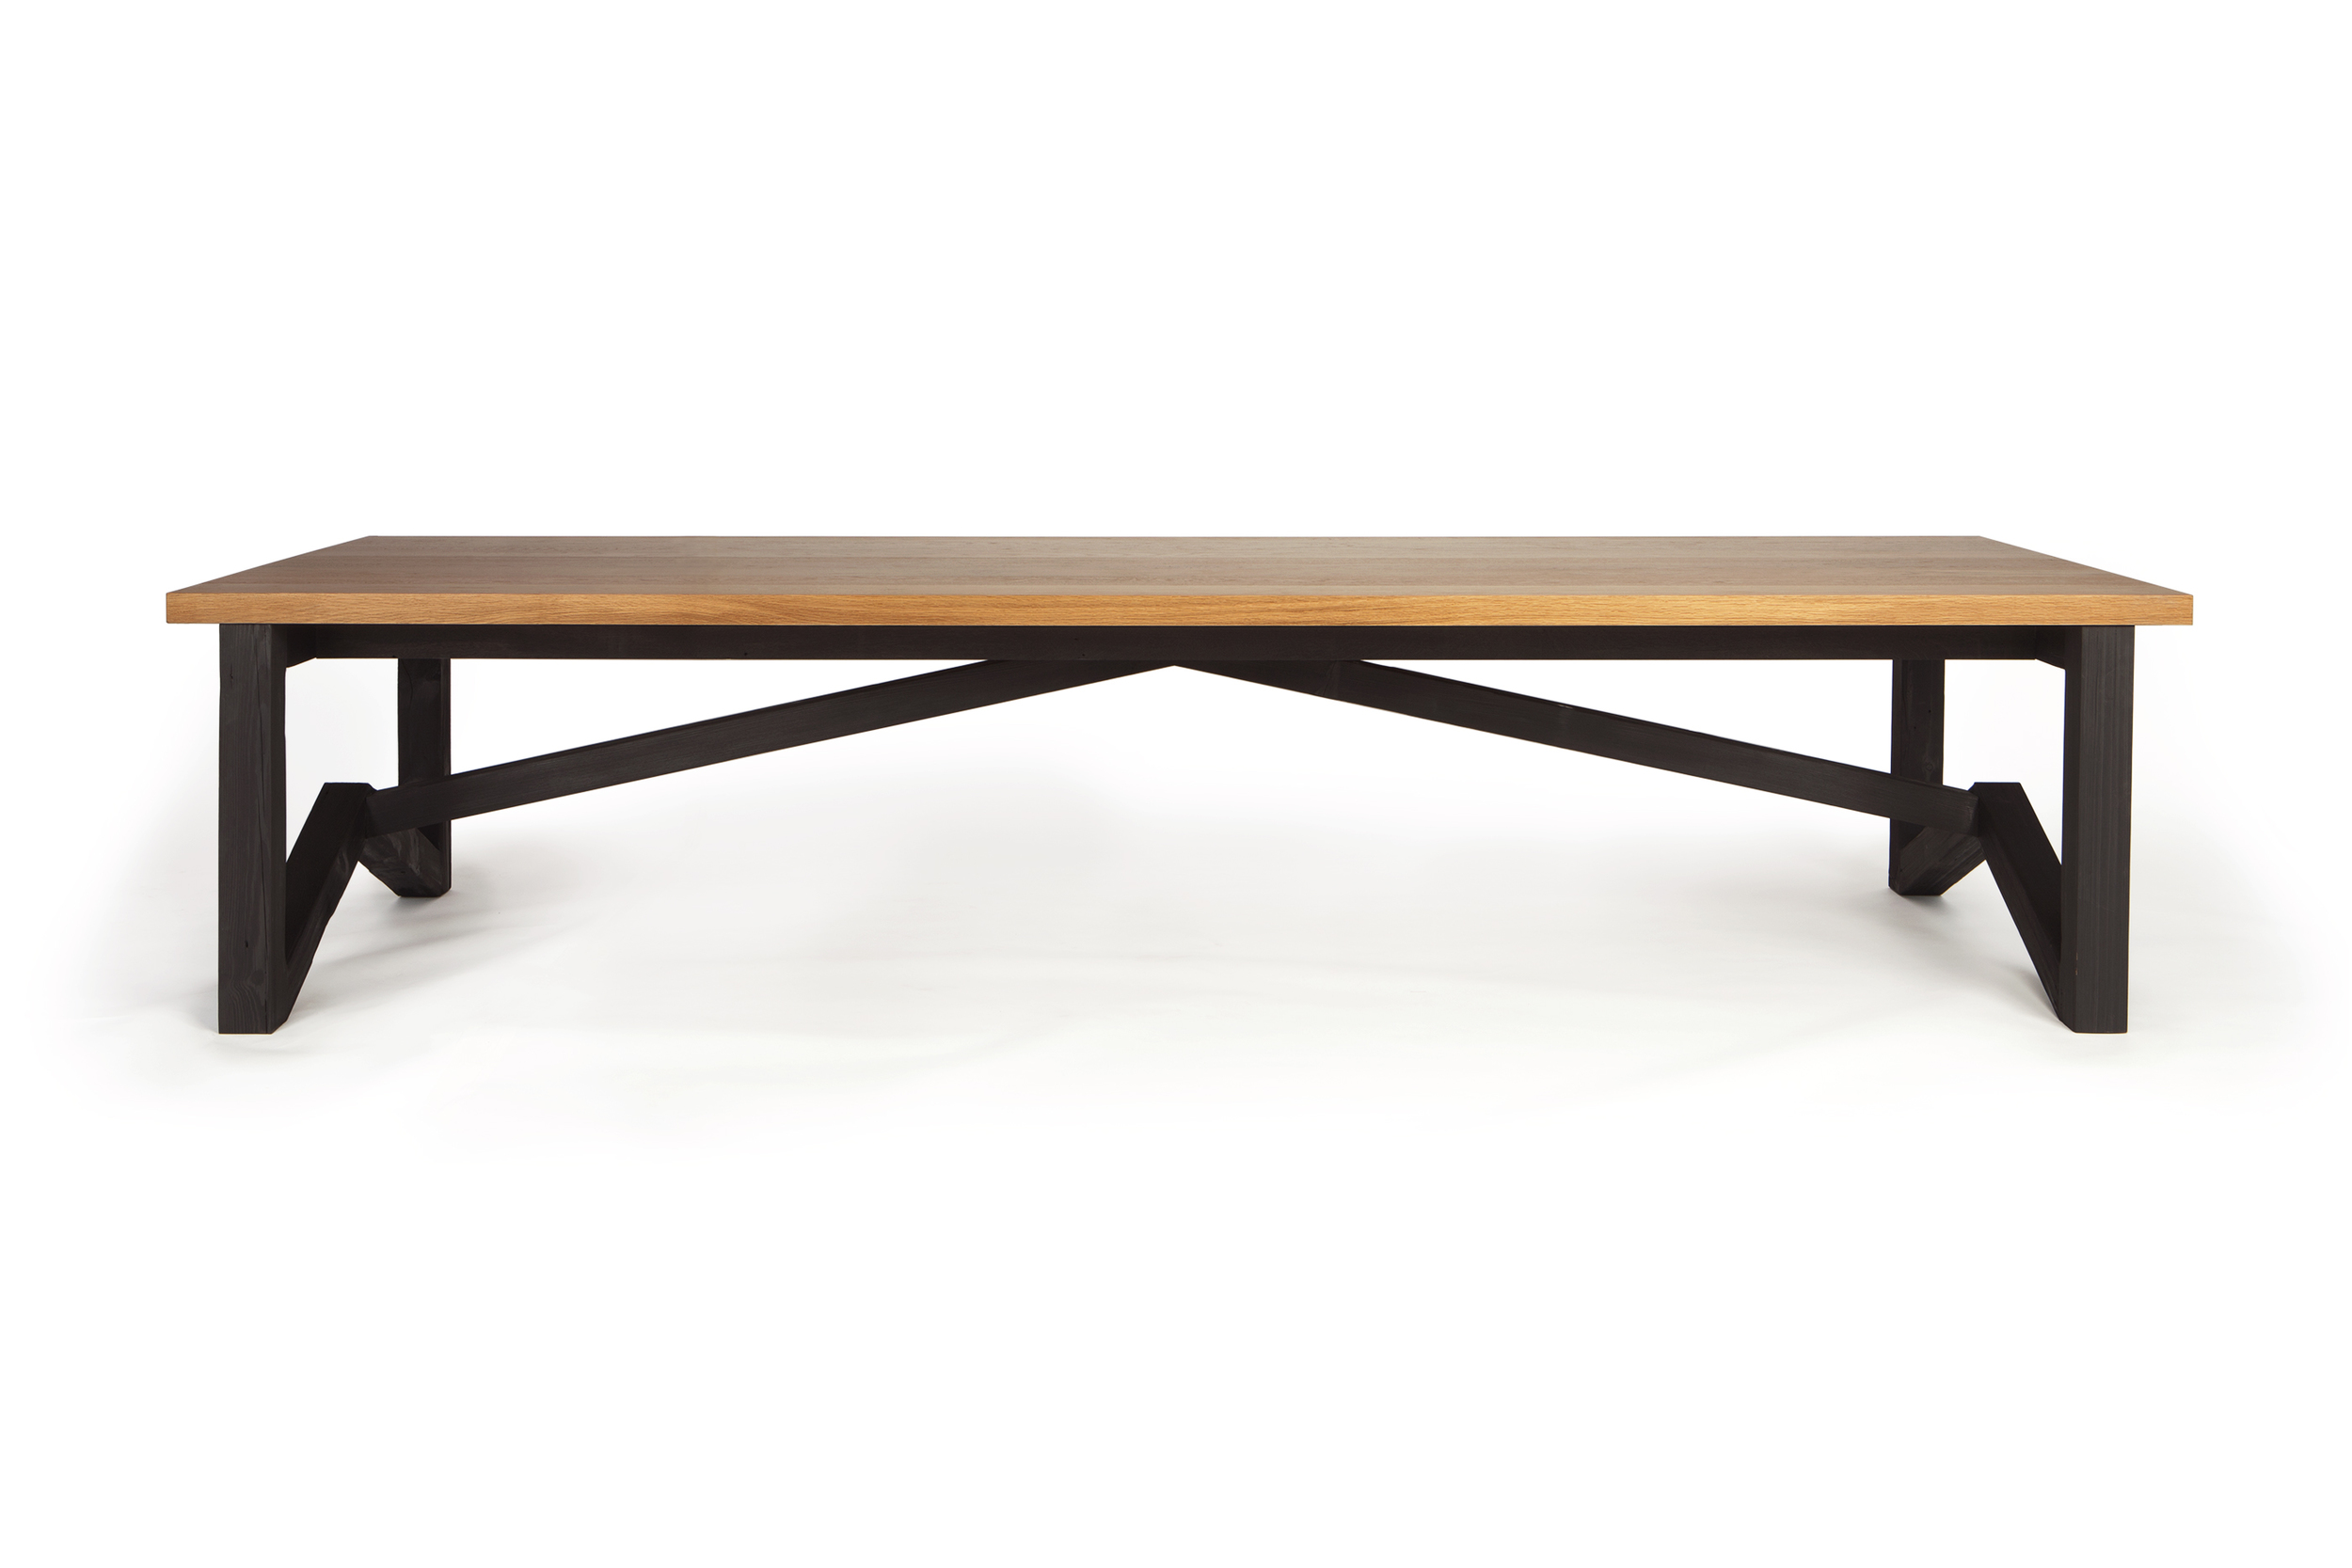 11 FOOT BUTTERFLY TRESTLE TABLE FEATURING CHARRED HEART PINE BASE WITH FSC CERTIFIED WHITE OAK TOP